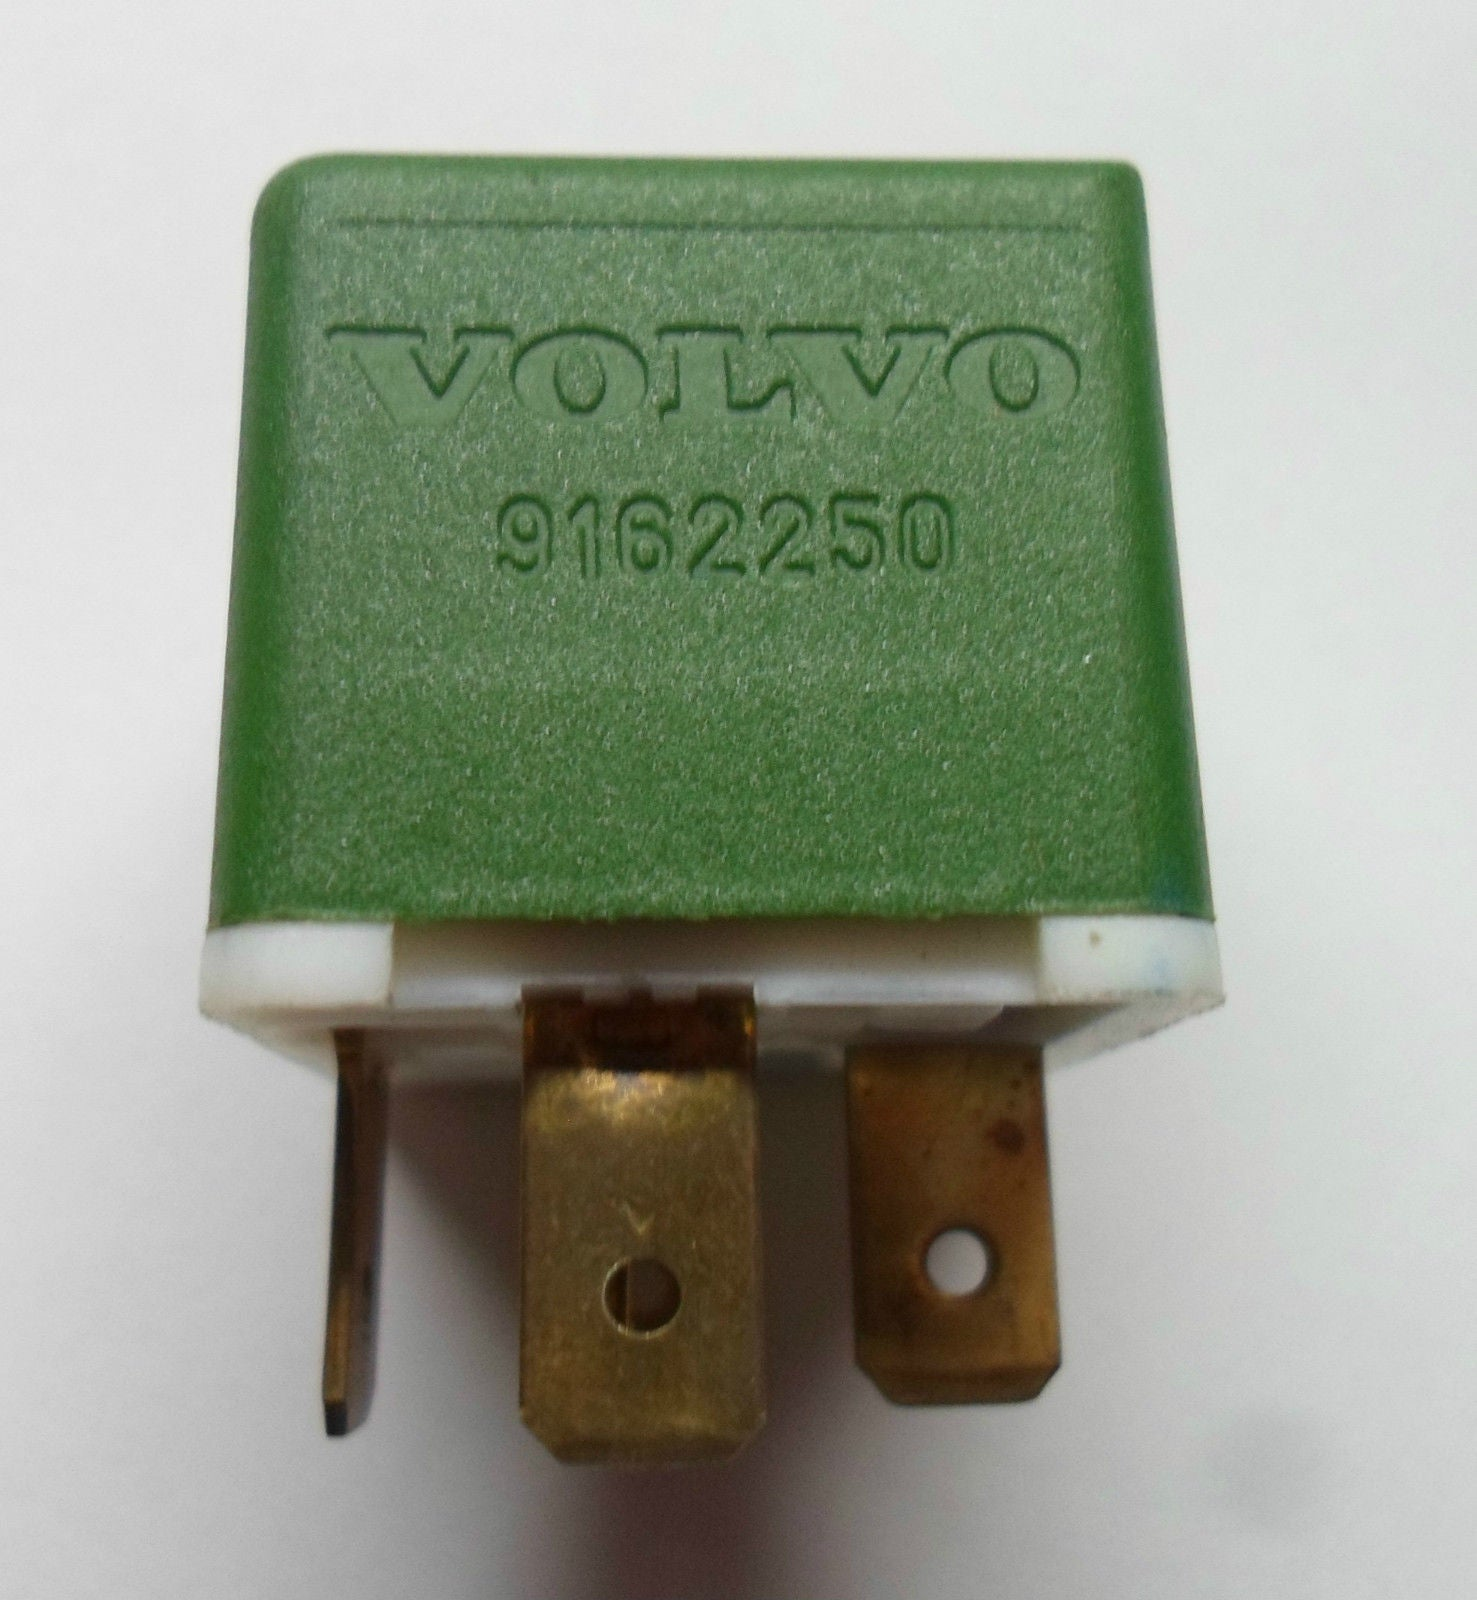 VOLVO  RELAY 9162250 TESTED  OEM  FREE SHIPPING! 6 MONTH WARRANTY! V2